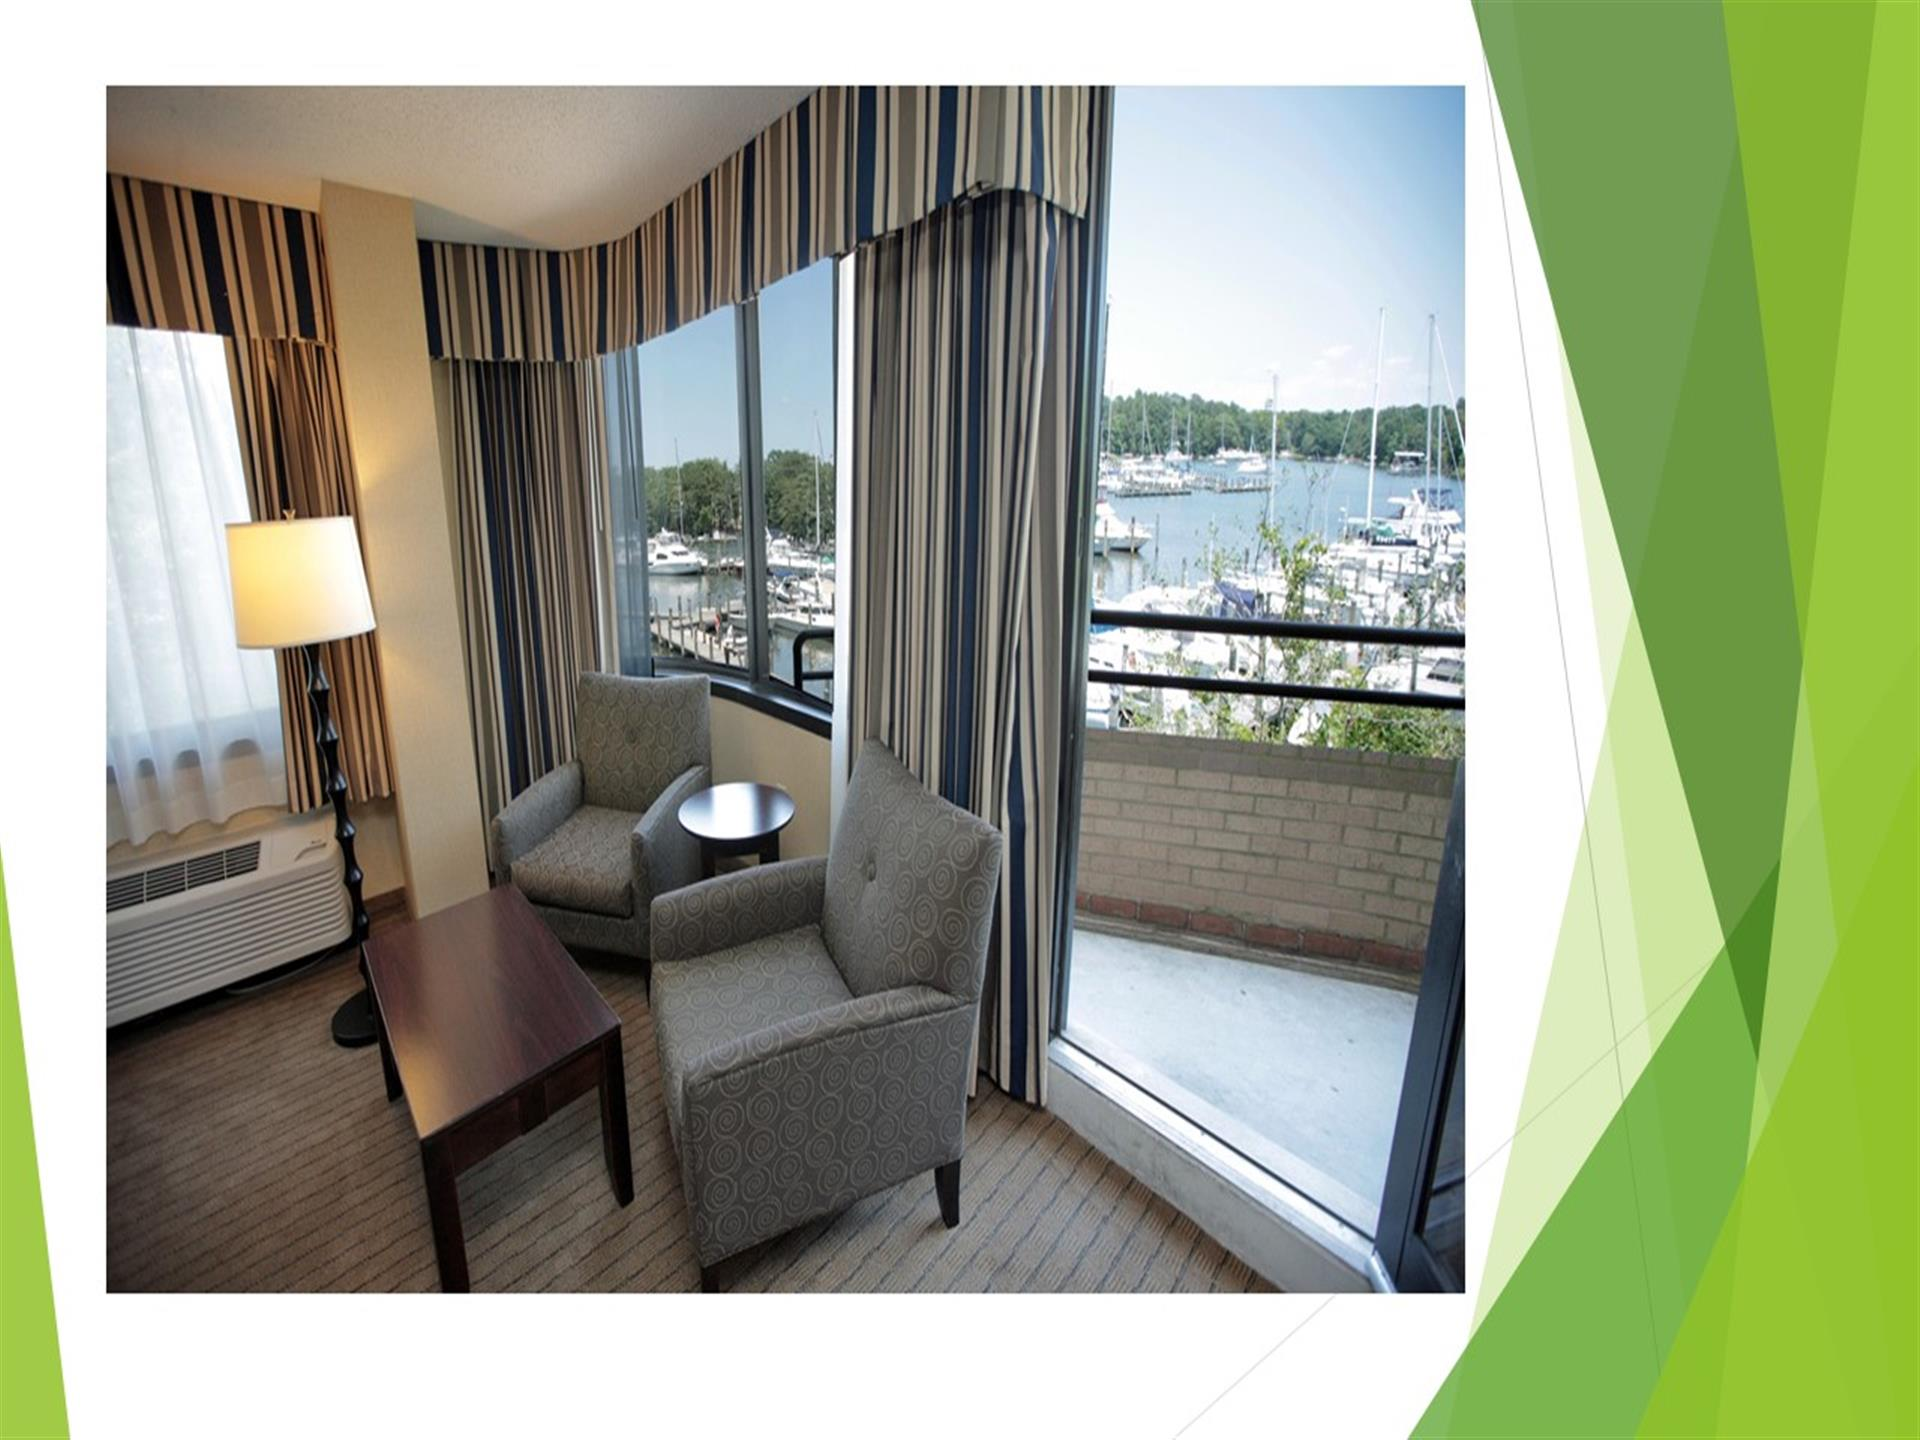 Hotel room with end table, chairs, balcony overlooking harbor